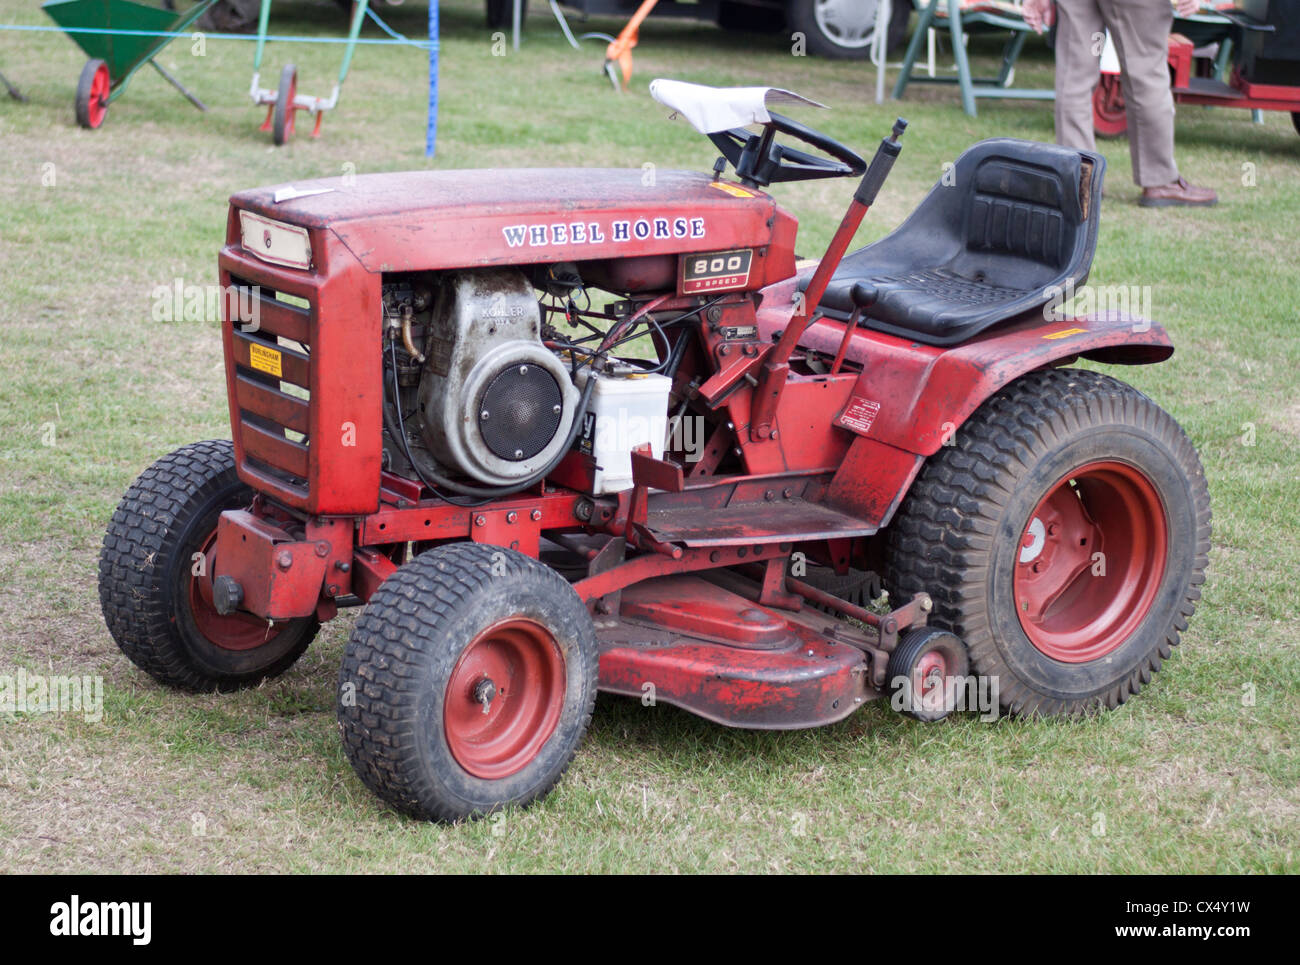 Wheel Horse Tractor Engines : Version wheel horse garden tractor with kohler engine